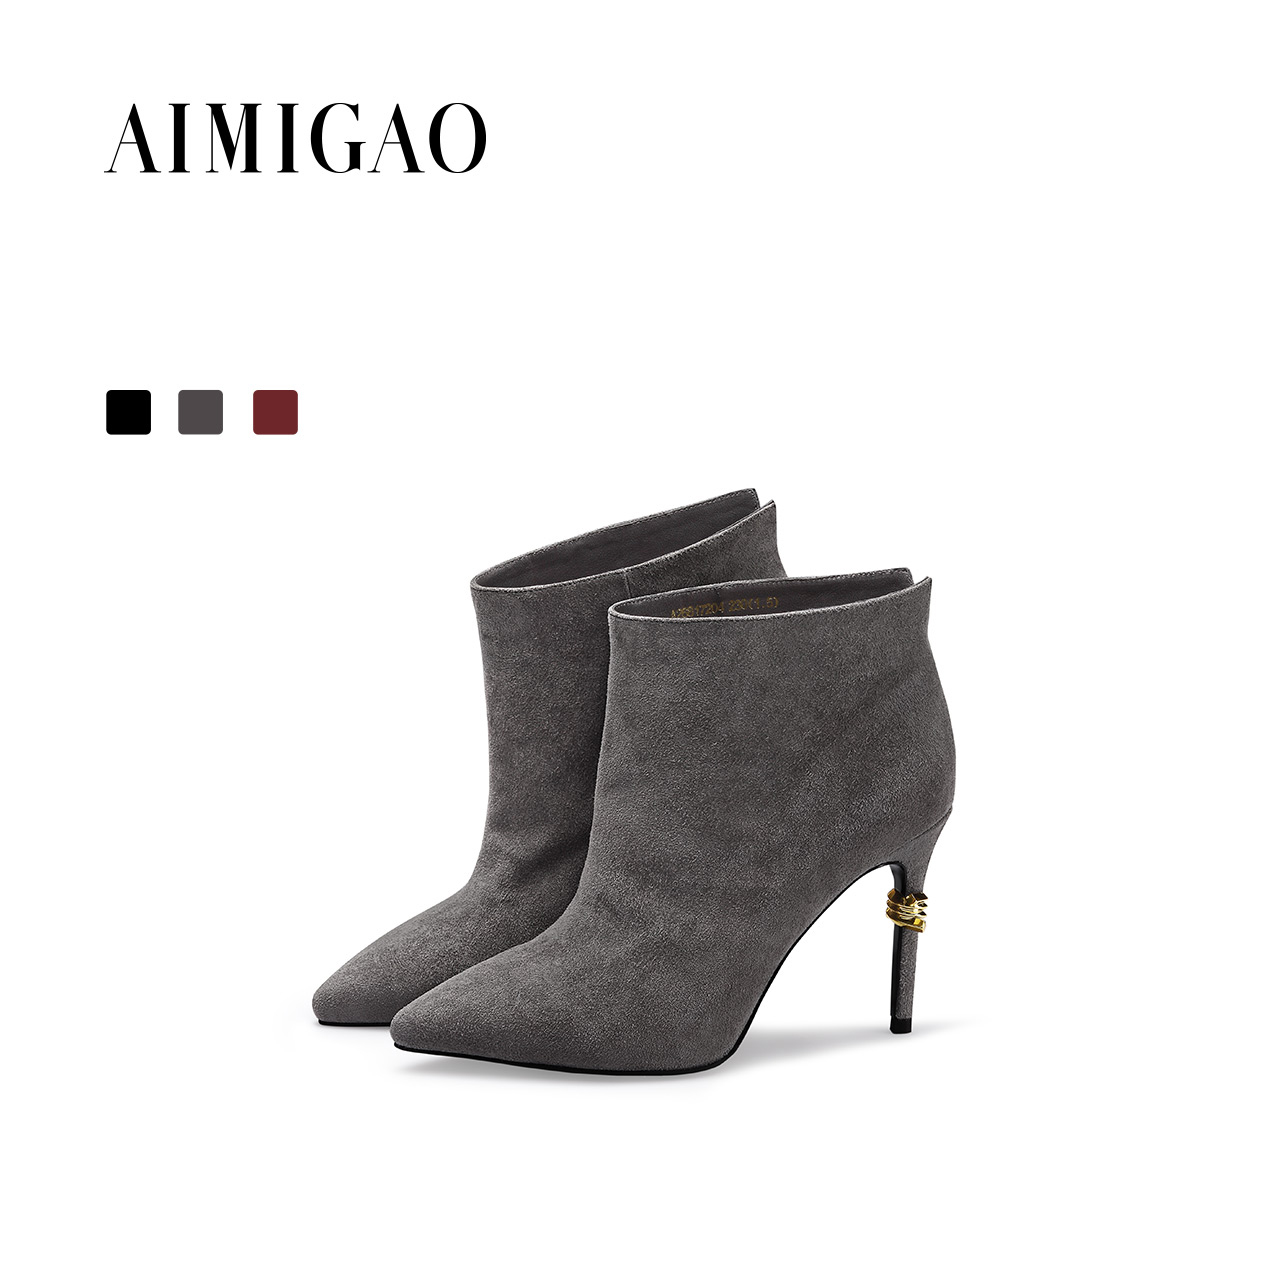 AIMIGAO suede leather women high-heeled boots pointed toe sexy thin high heel fashion ankle boots 2018 autumn winter new women faux suede side zipper sexy thin high heel thigh boots fashion pointed toe winter shoes black g